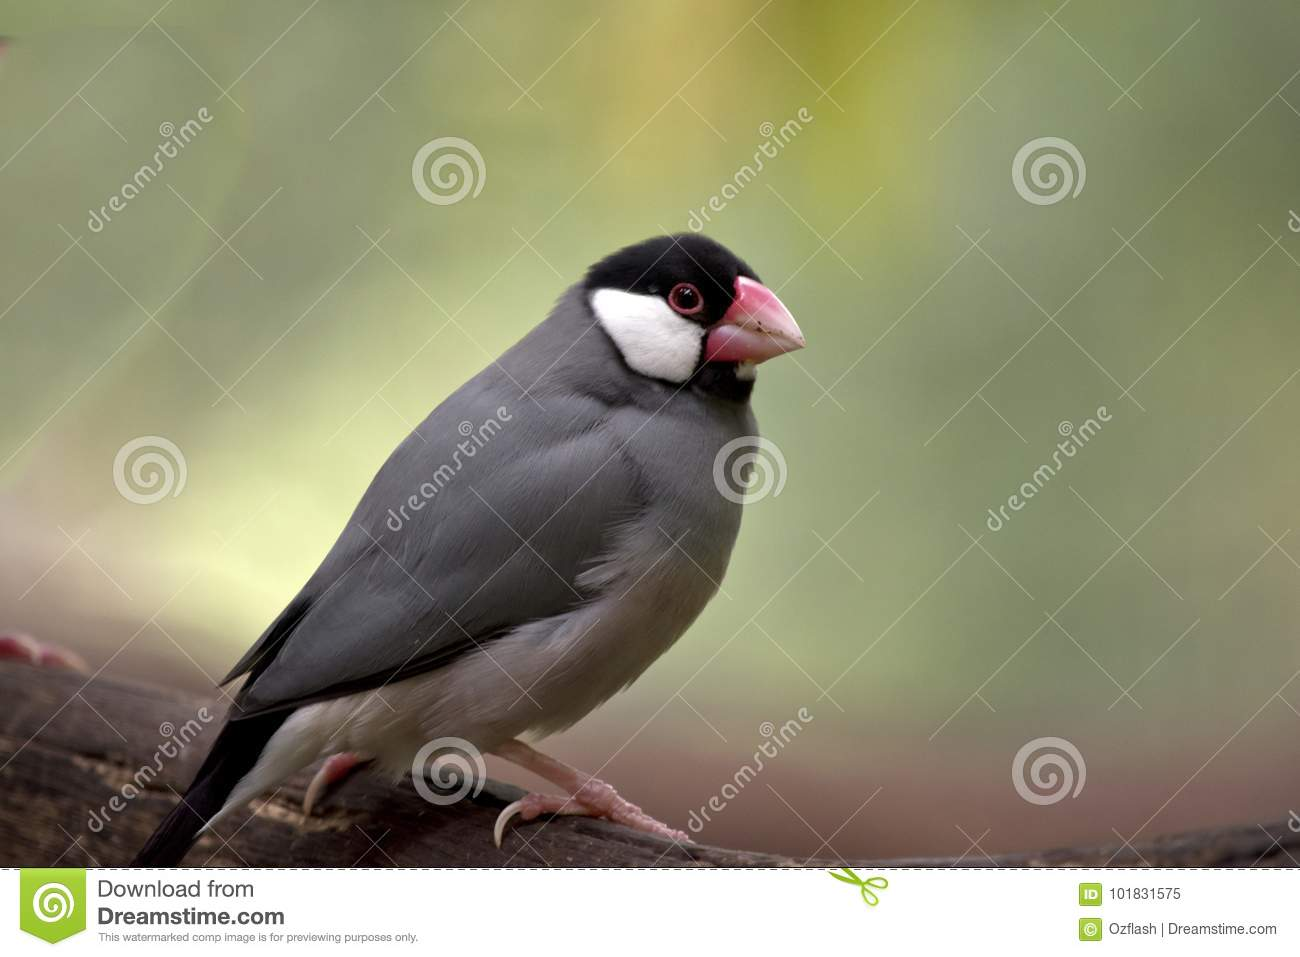 Java sparrow stock image  Image of bird, feathers, view